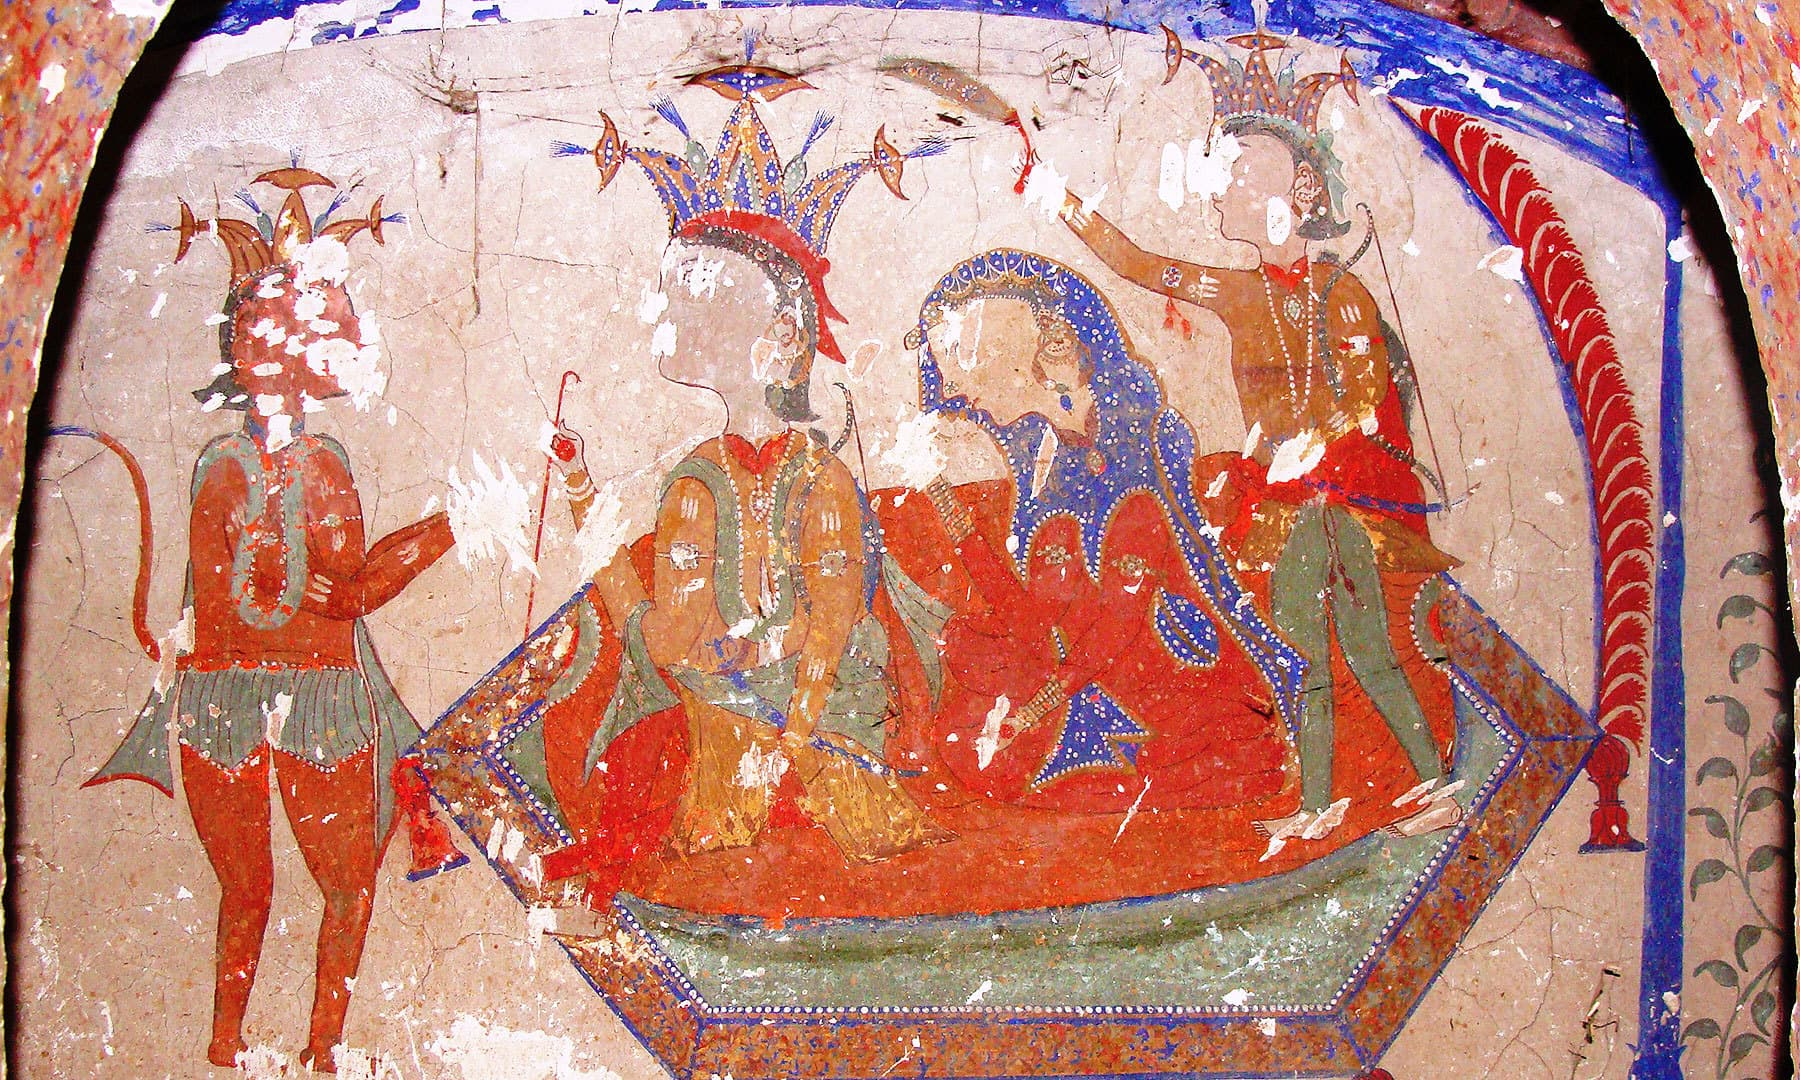 Paintings of Rama and Sita with Hanuman in a Sikh samadhi.